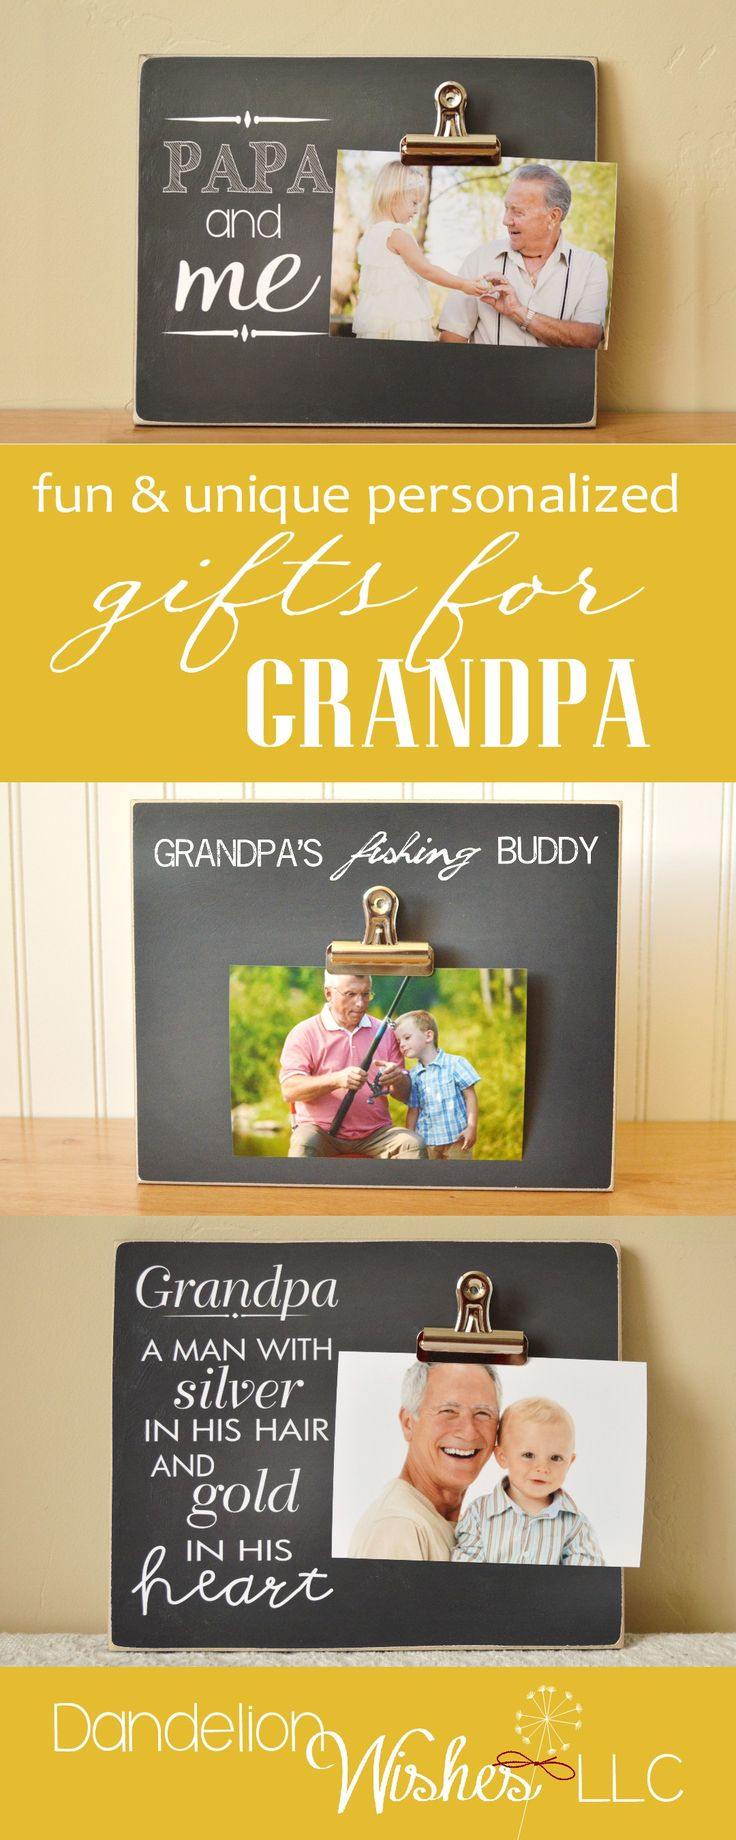 Fun, personalized Father's Day gifts for Grandpa. Give a gift that will make his heart melt!   by Dandelion Wishes